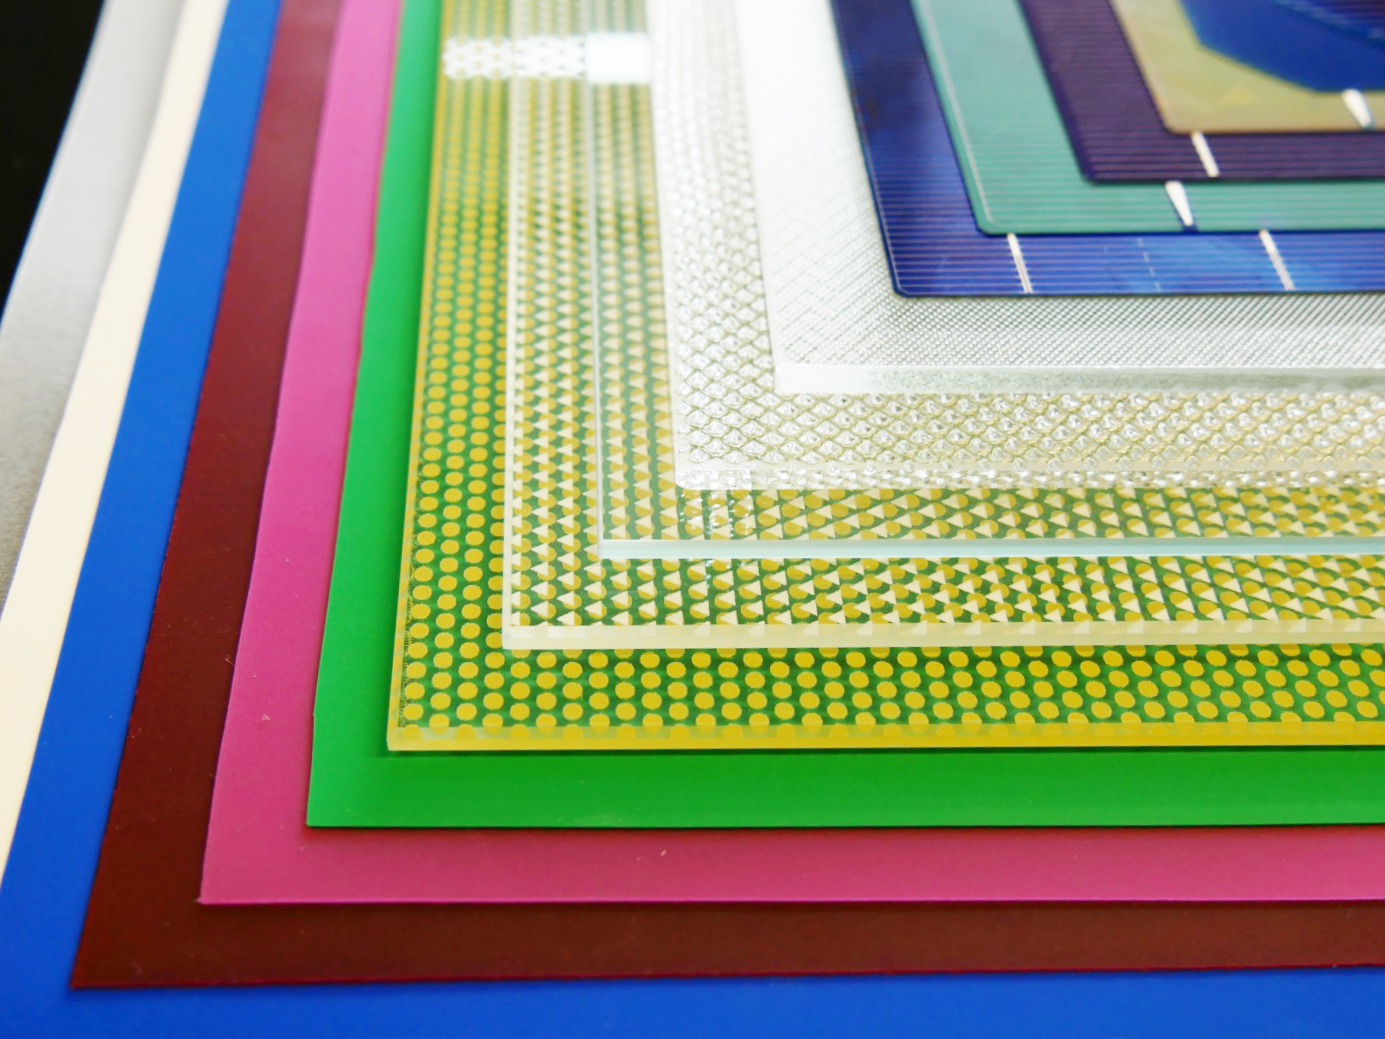 The Fraunhofer Institute for Solar Energy Systems ISE has teamed with PV manufacturing equipment specialist, SCHMID Group on lower cost BIPV modules that could reduce production costs by as much as 35%. Image: SCHMID